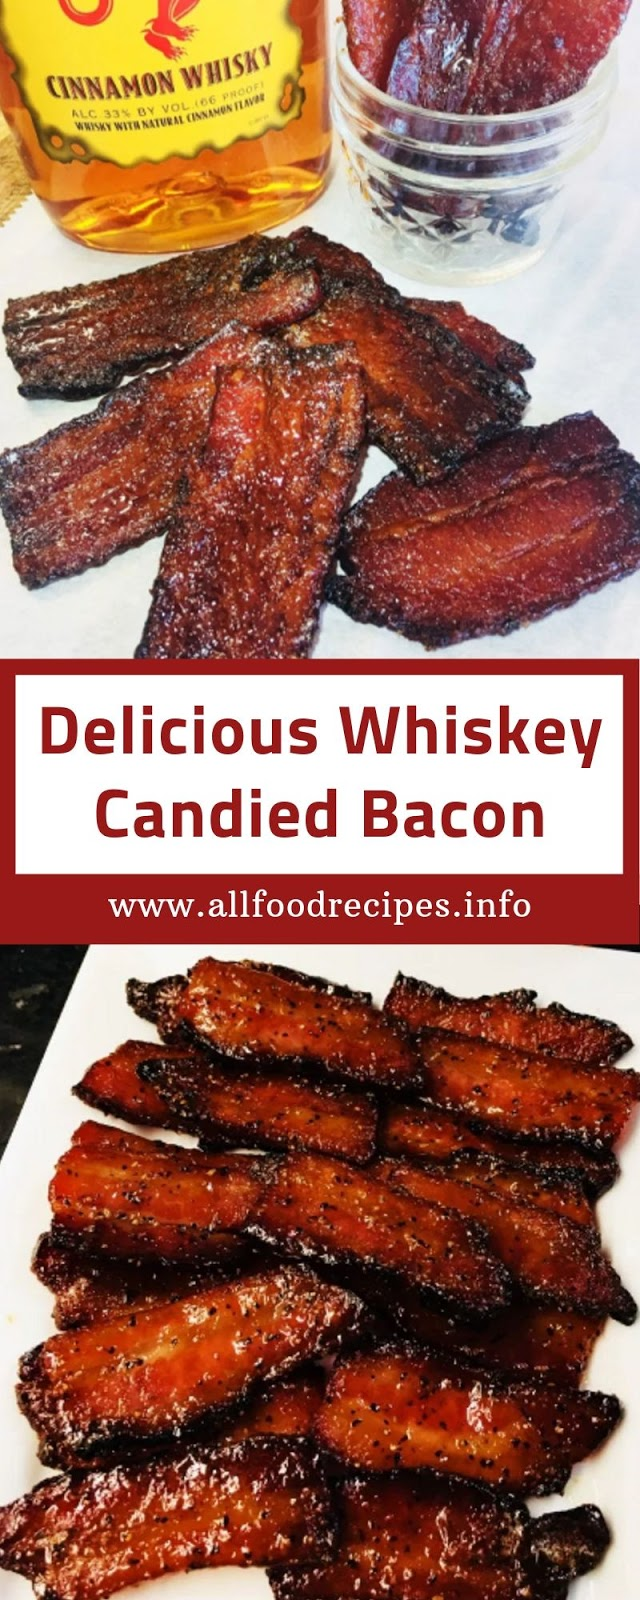 Delicious Whiskey Candied Bacon